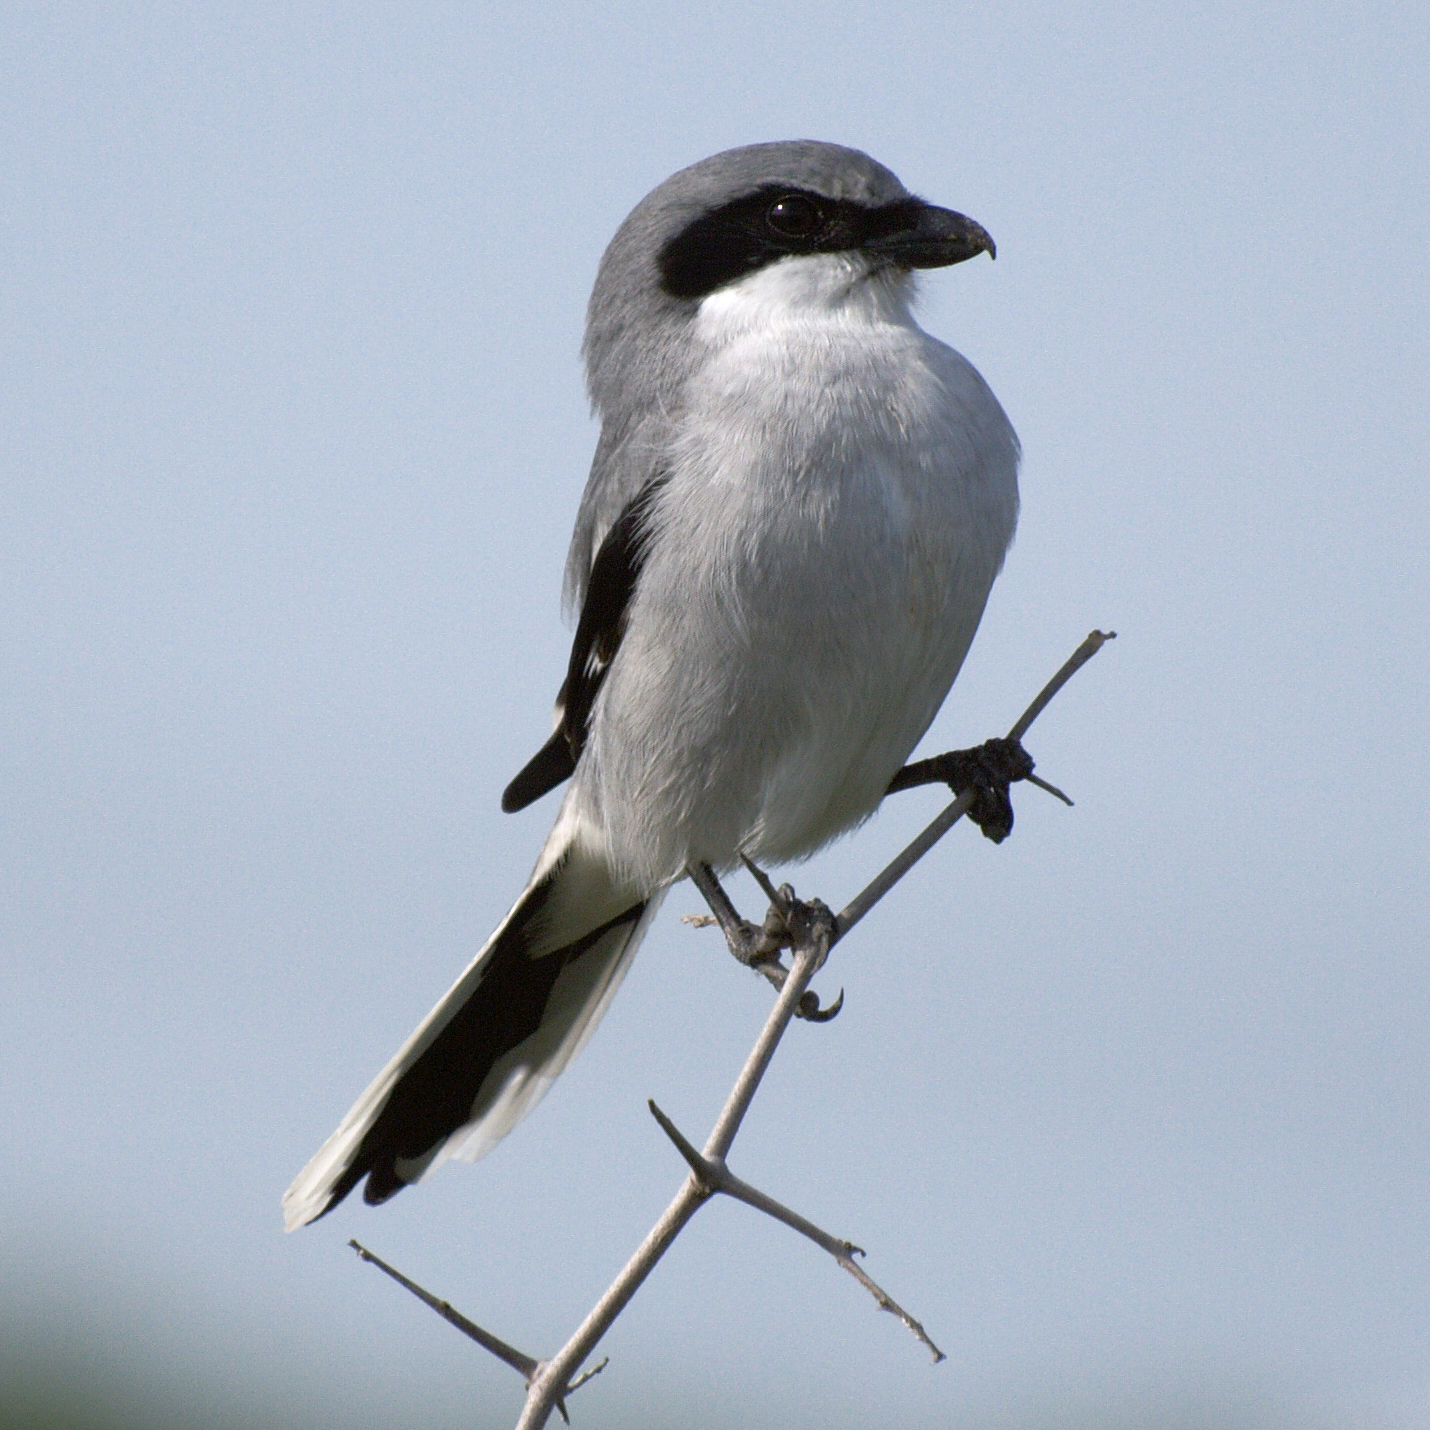 Loggerhead Shrike photos and wallpapers. Collection of the